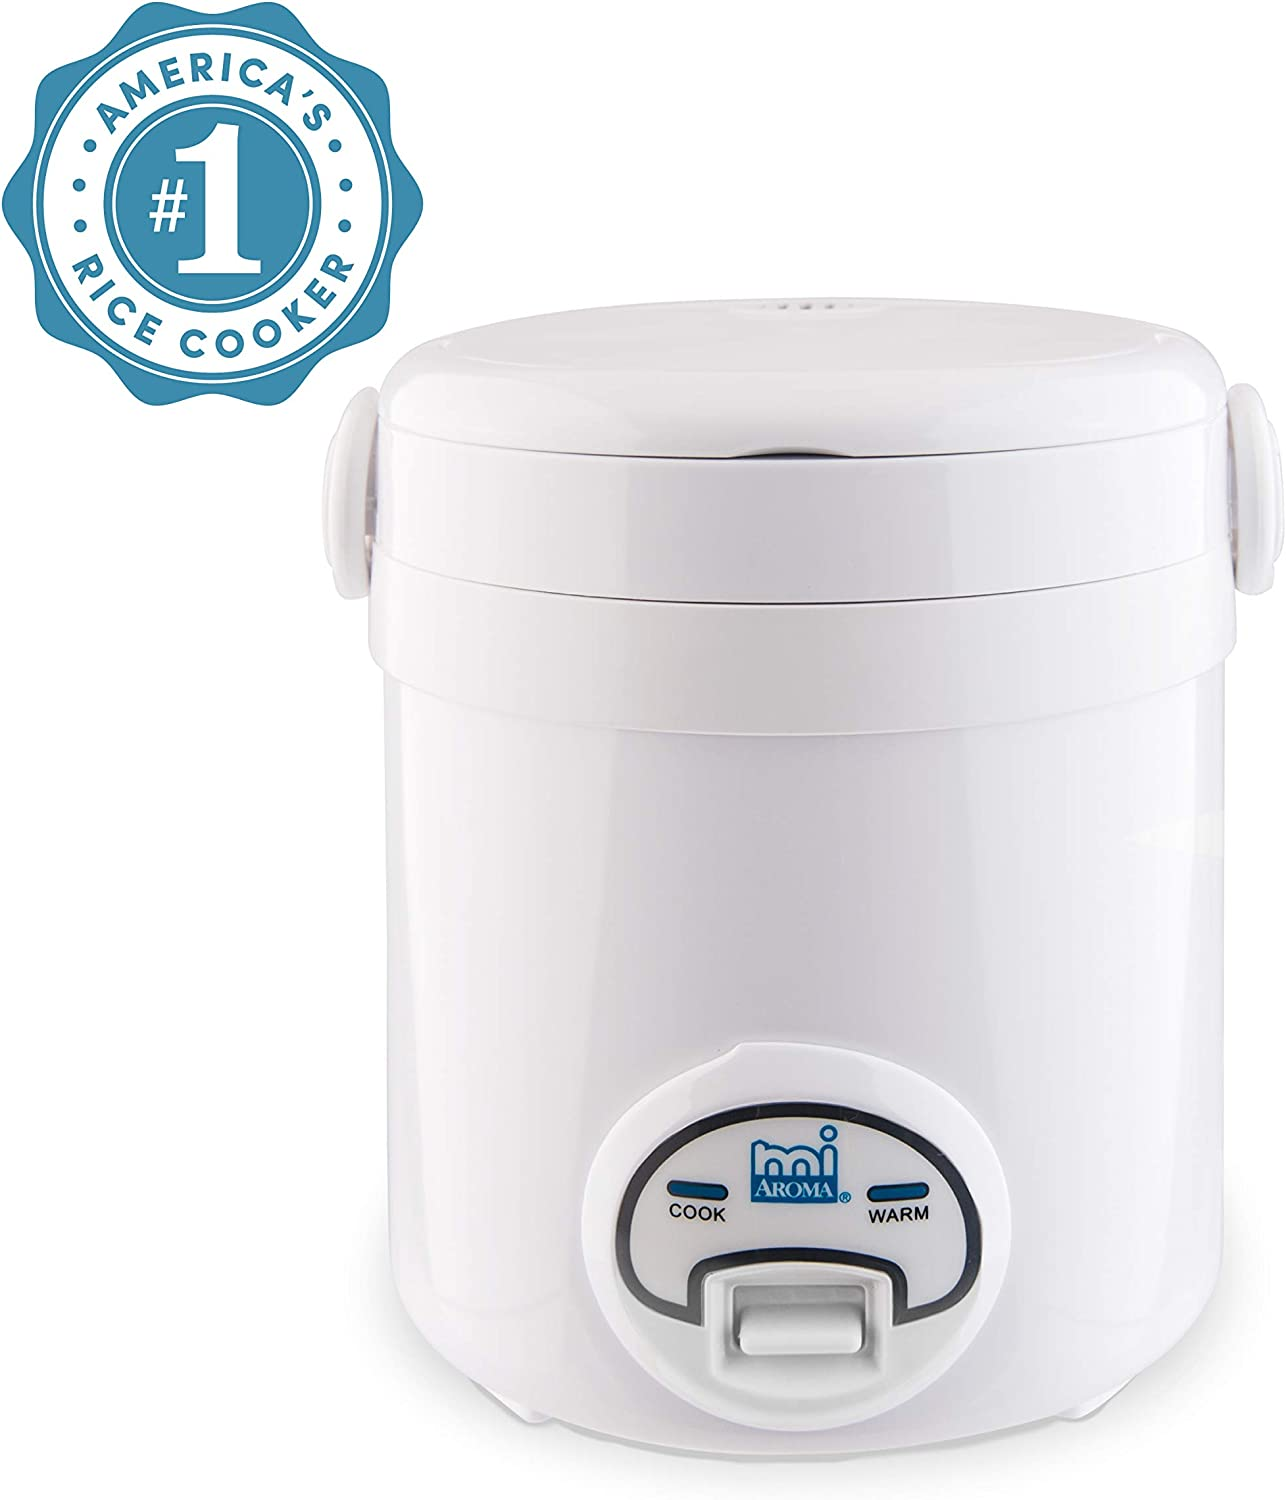 Digital C.. Cooked Free Shipping Aroma Housewares Mi 3-Cup 1.5-Cup UNCOOKED